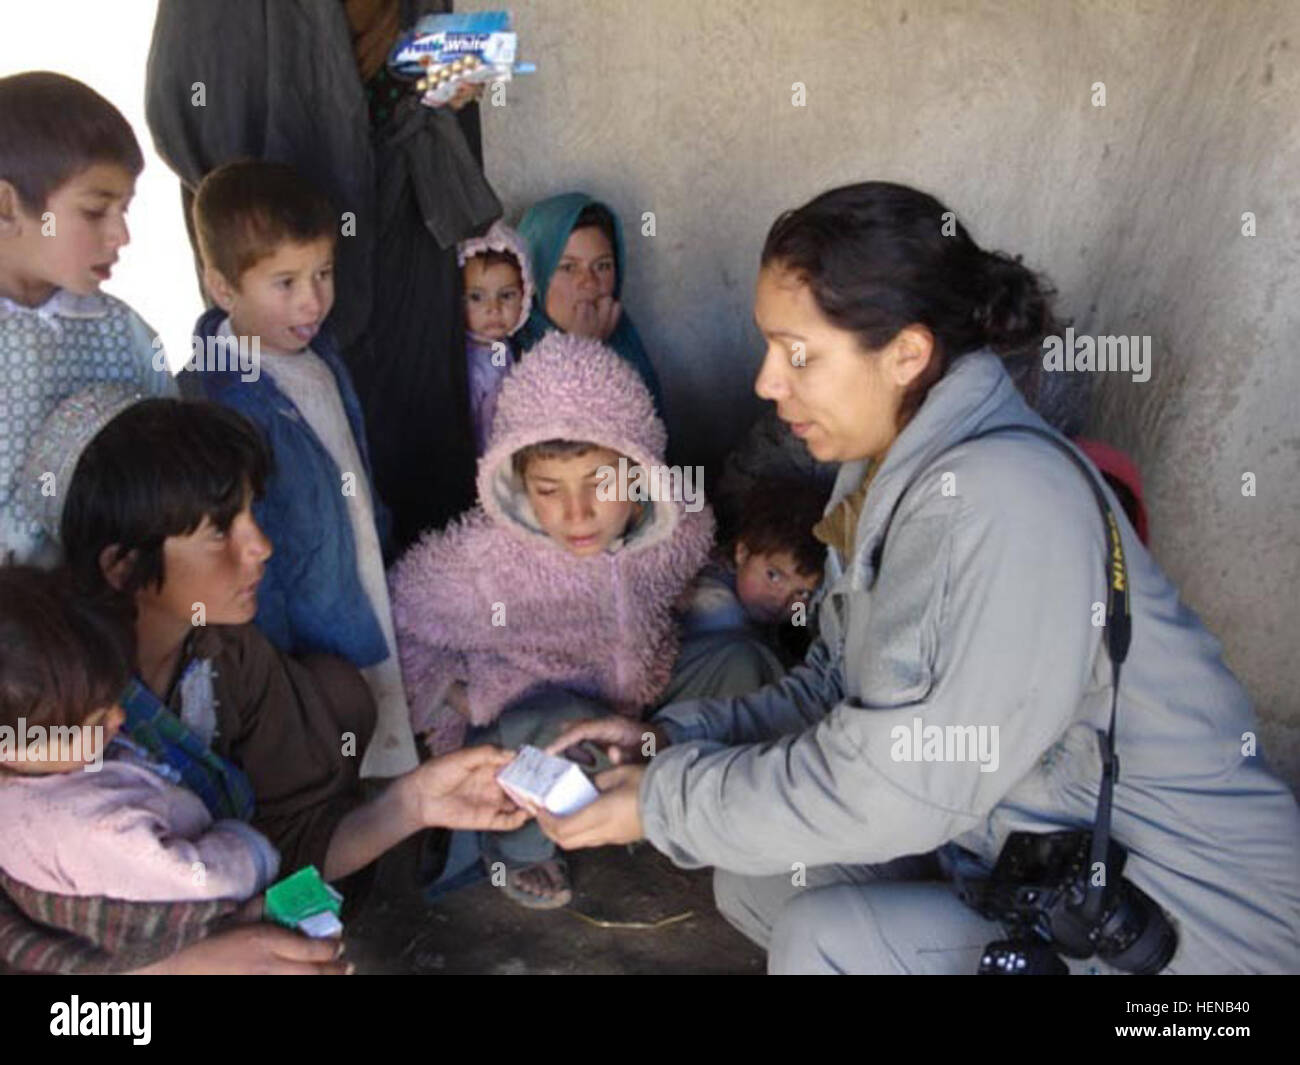 A coalition soldier explains instructions for medications to a young Afghan girl. More than 250 men, women, and - Stock Image